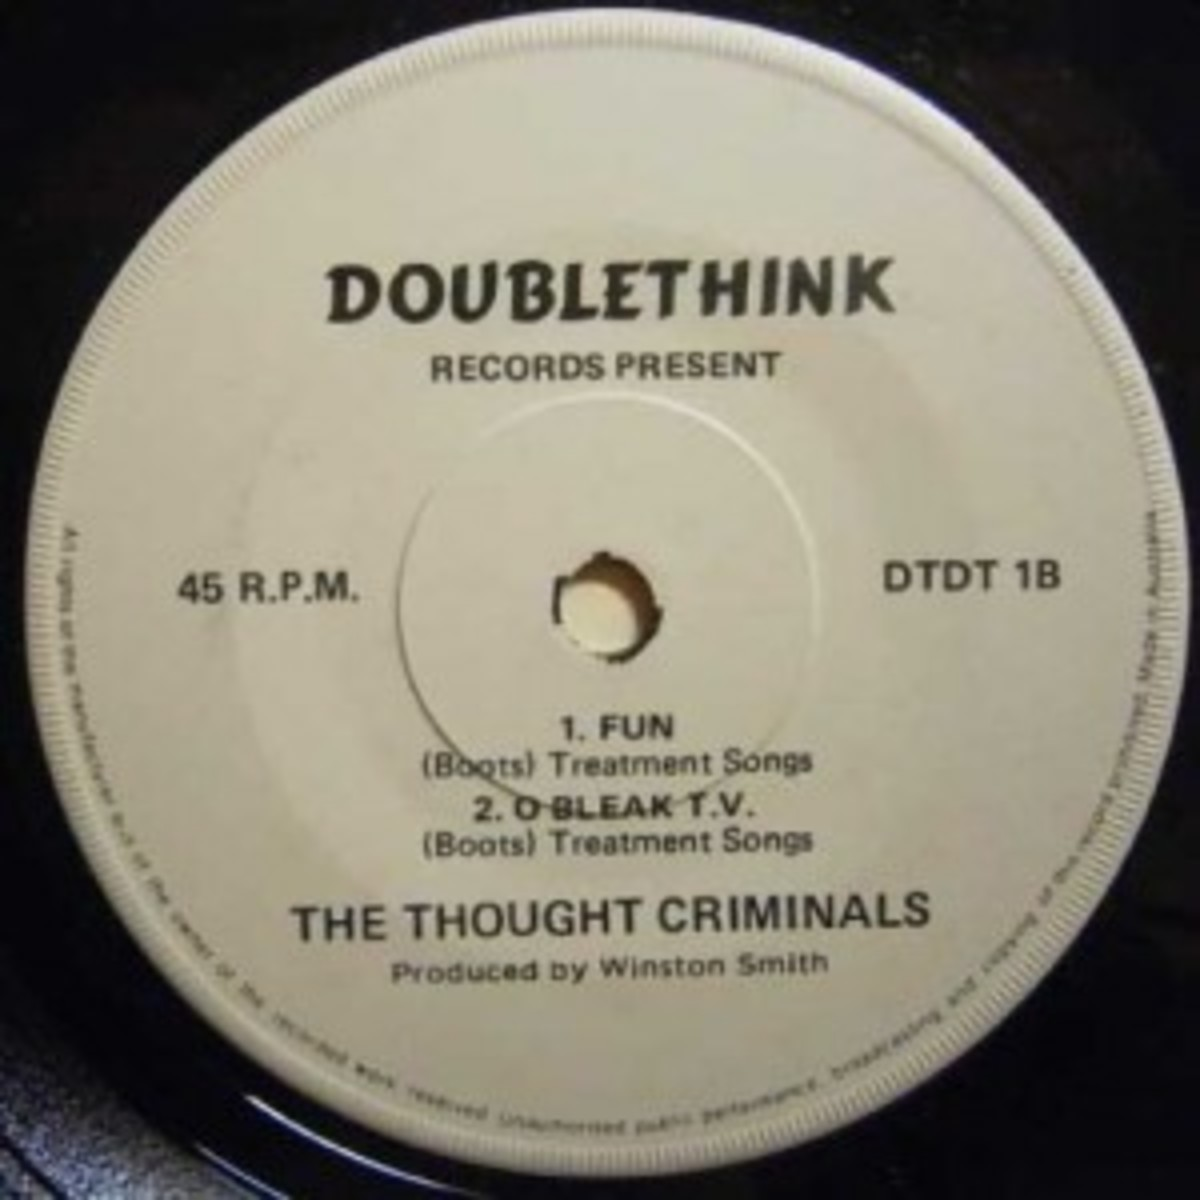 The Thought Criminals